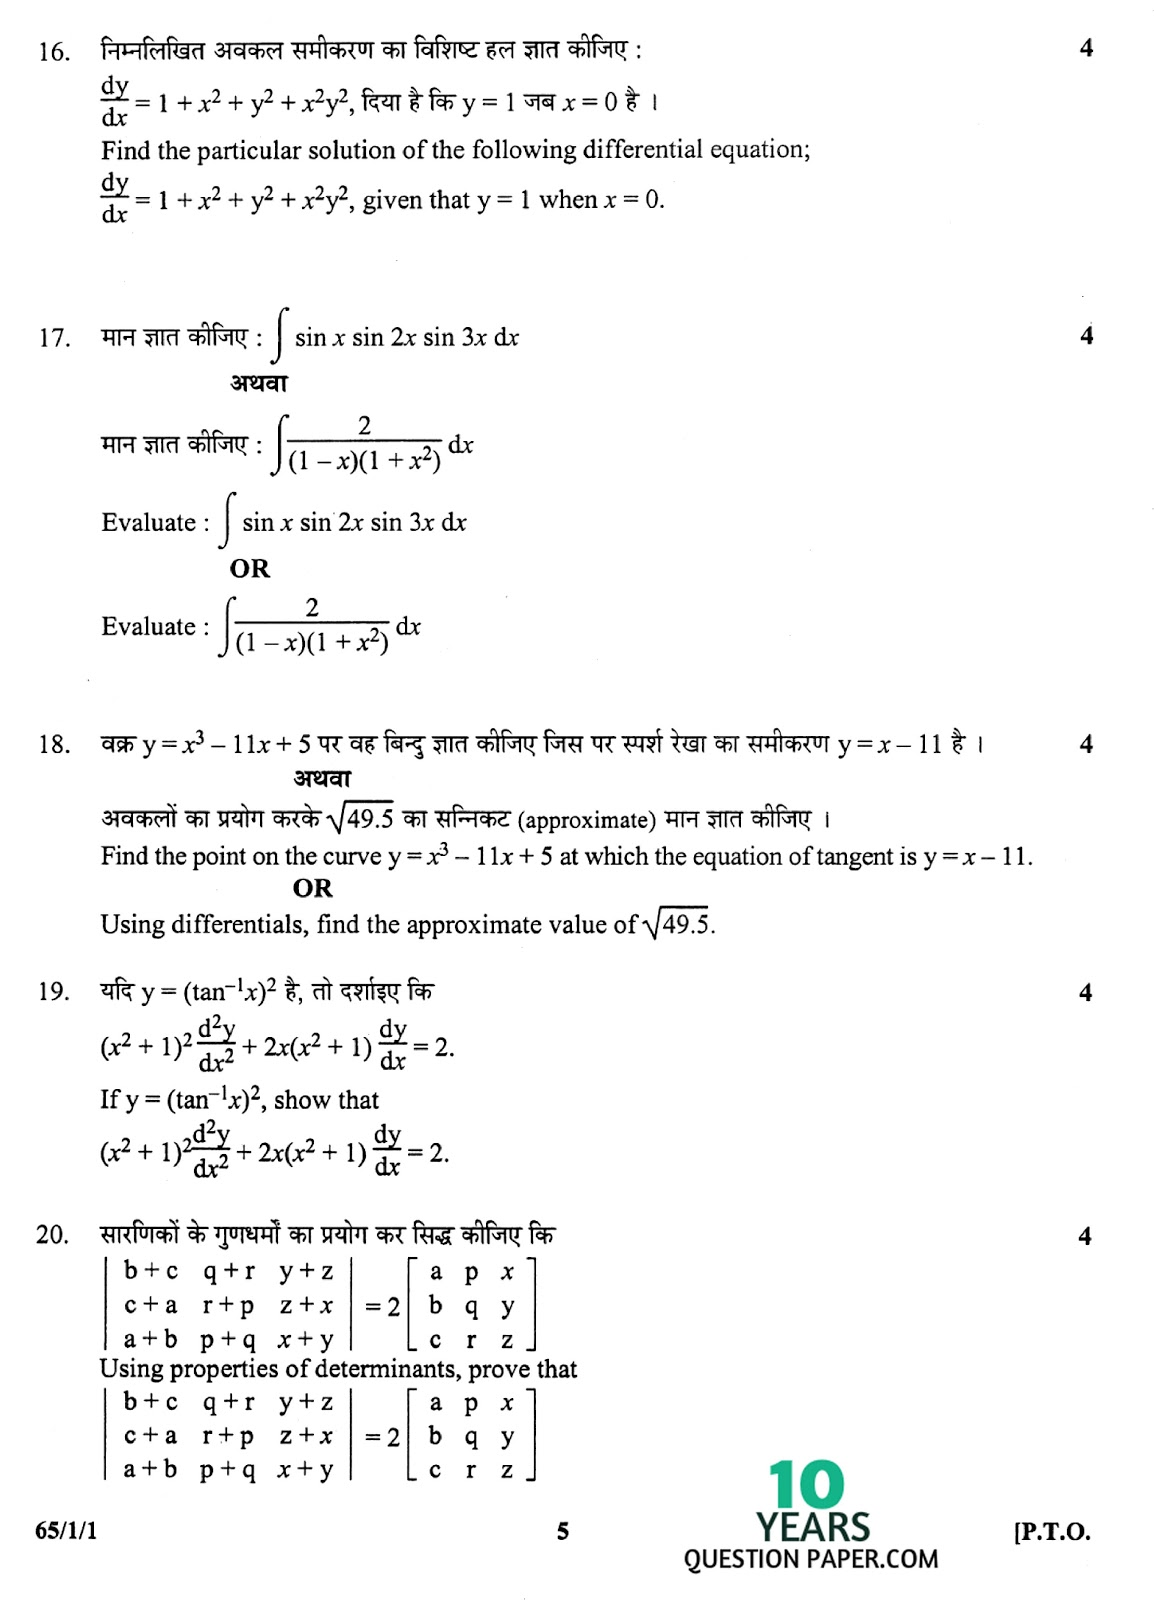 cbse class 12th 2010 Mathematics question paper